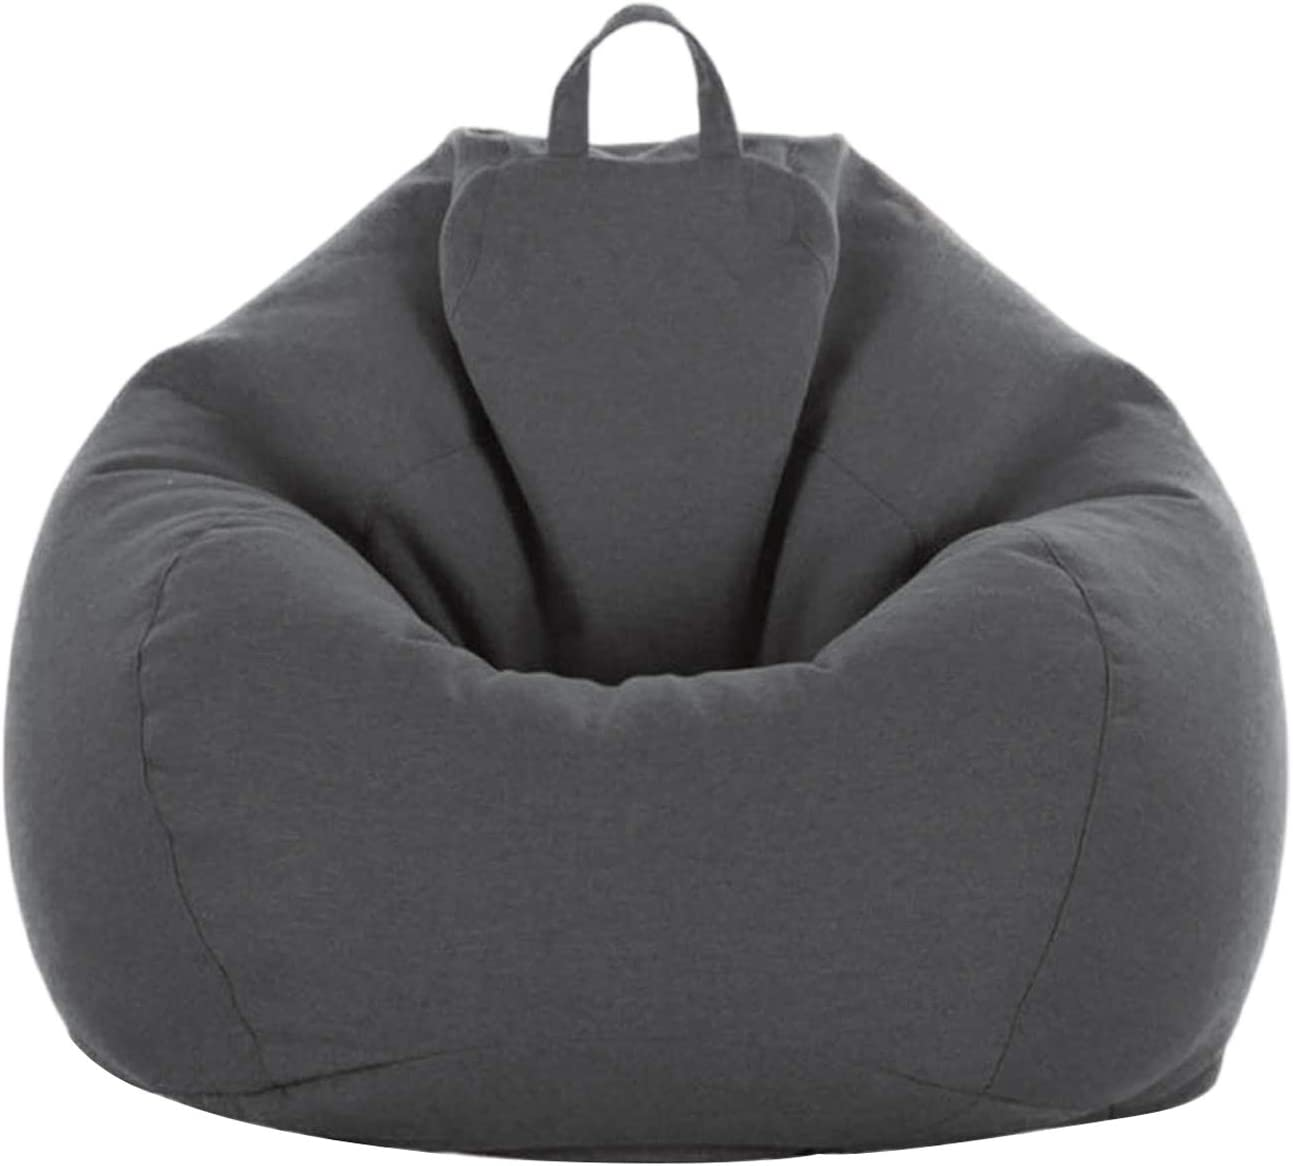 Soft Bean Bags Sofa Chairs Covers for Adults, No Filler, Filler by Yourself, Teens and Kids Indoor Outdoor (Dark Gray, 31.5